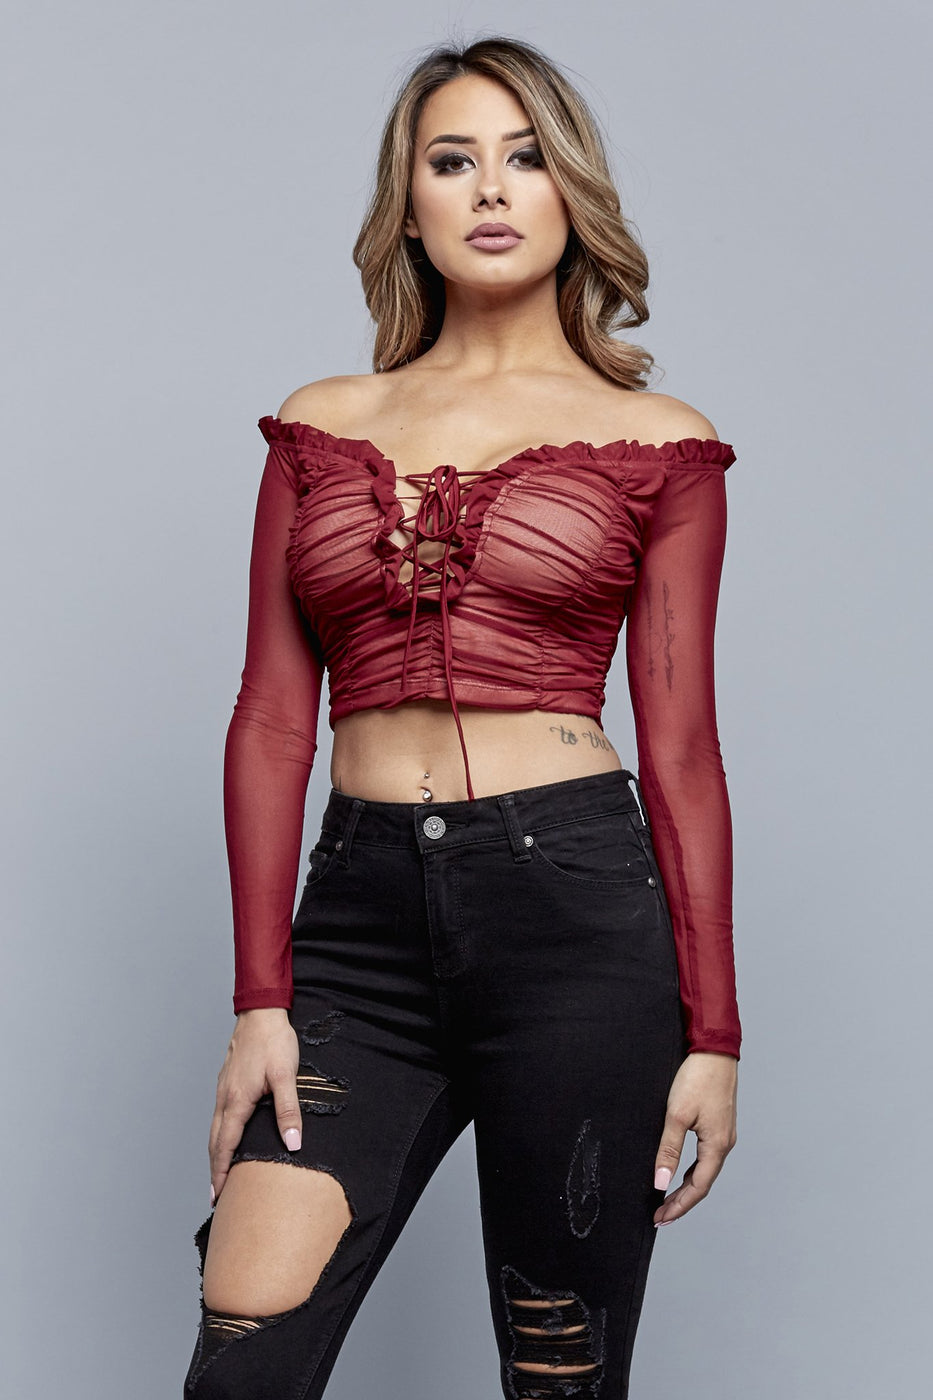 VICTORIA CROPPED TOP | BURGUNDY